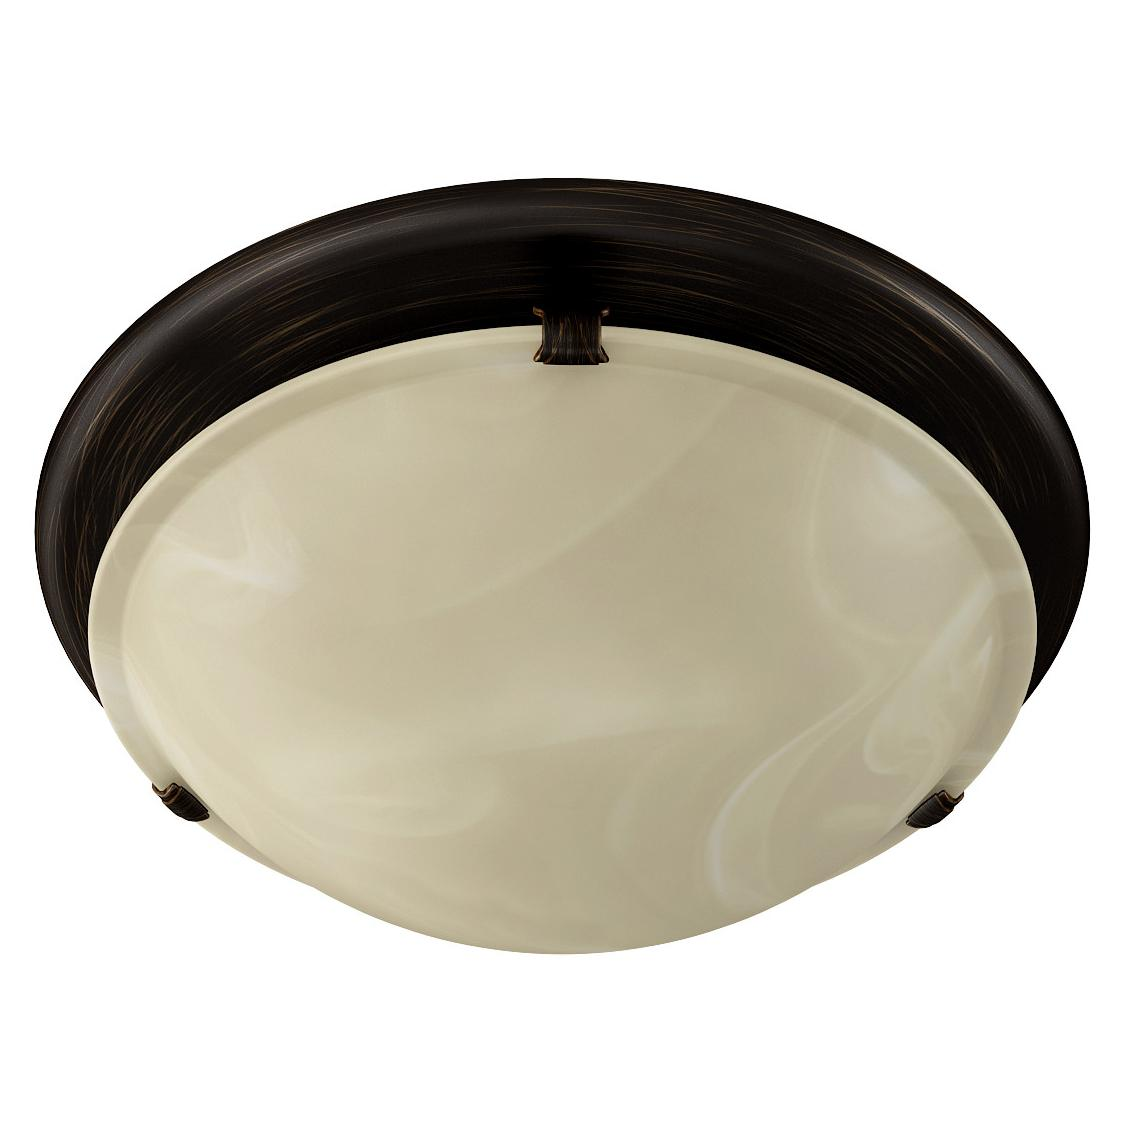 Broan-NuTone 761RB Round Fan and Light Combo for Bathroom and Home,  Oil-Rubbed Bronze Finish with Ivory Alabaster Glass, 2.5 Sones, 80 CFM